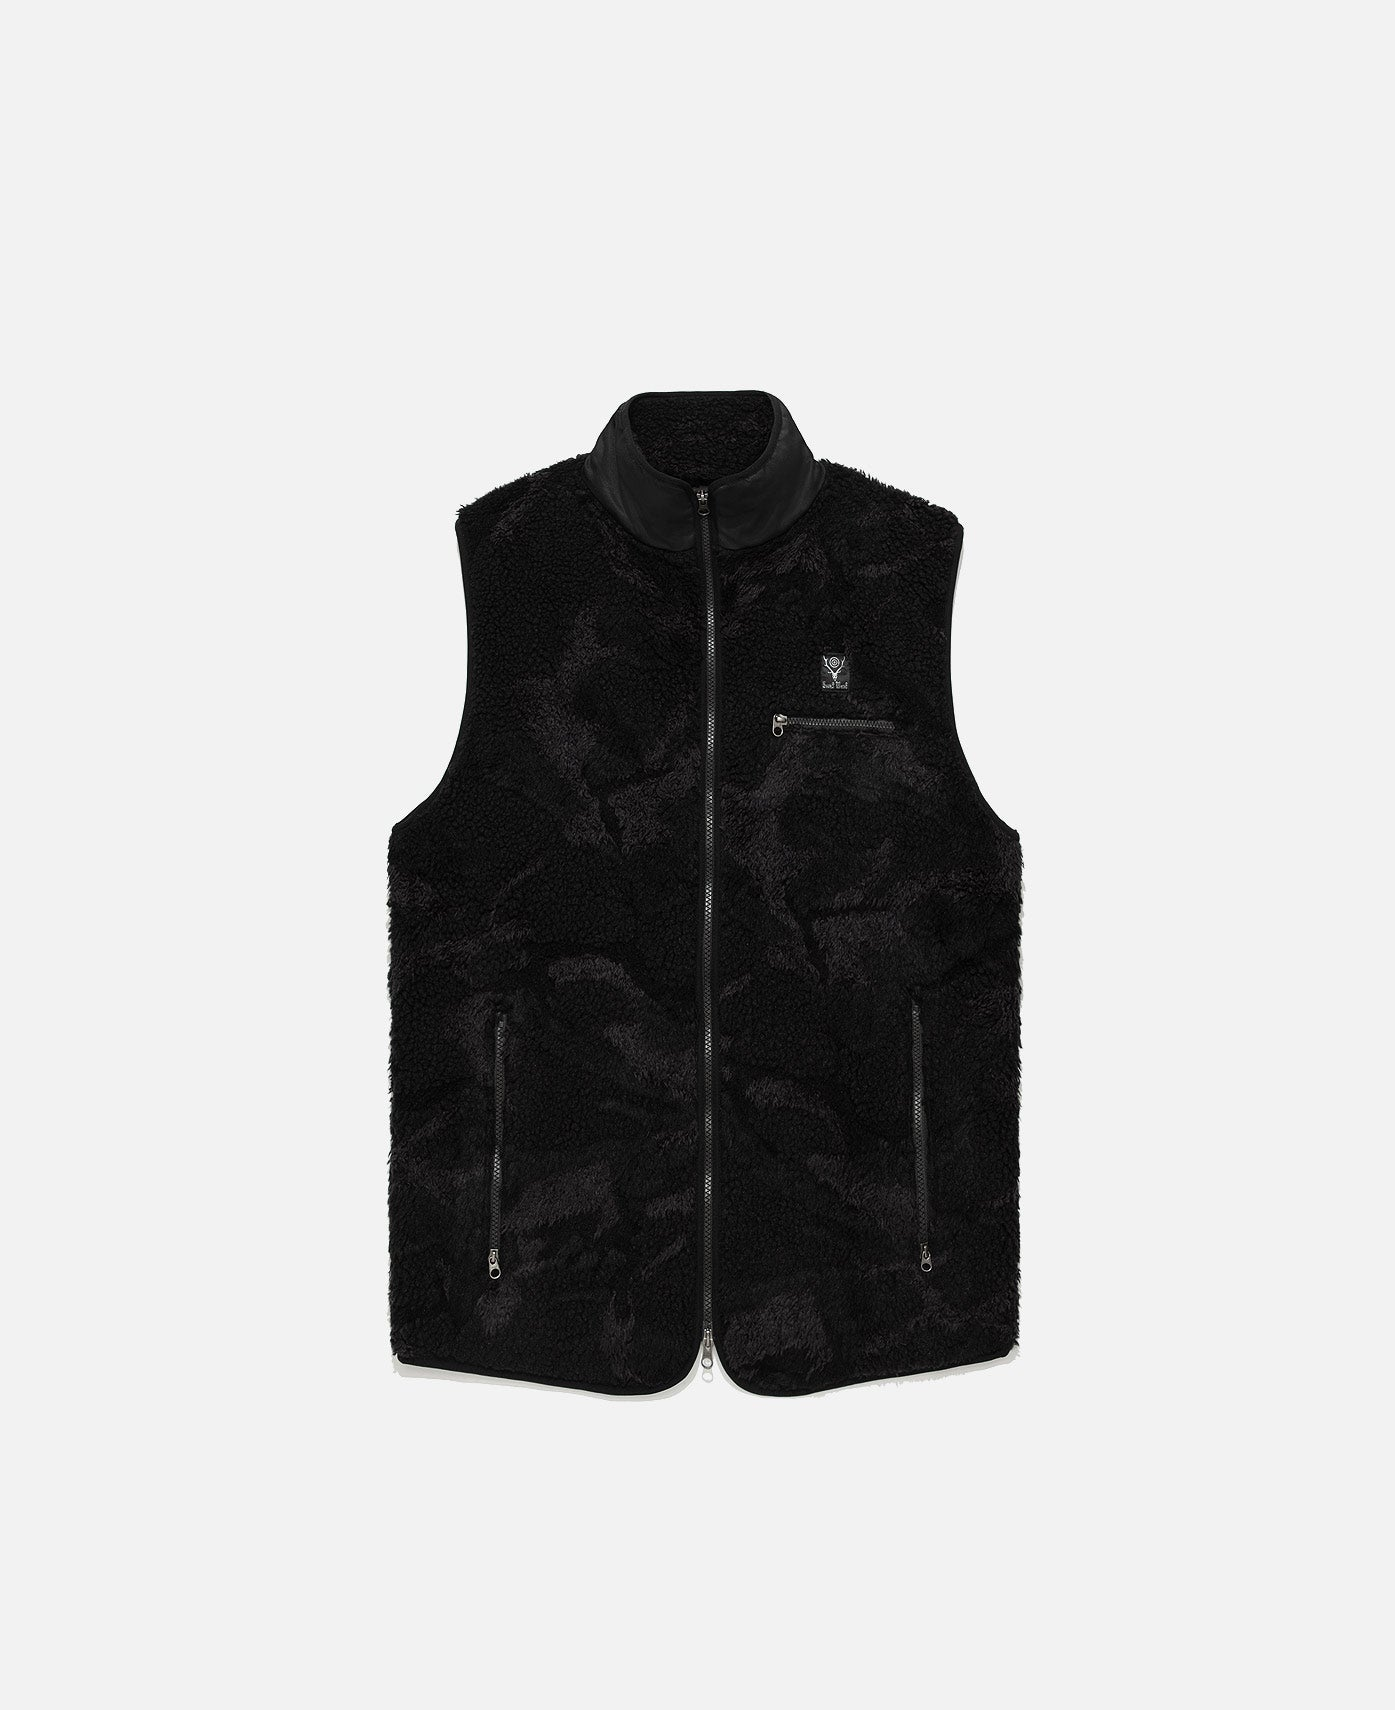 Boa Jq. Piping Vest (Black)